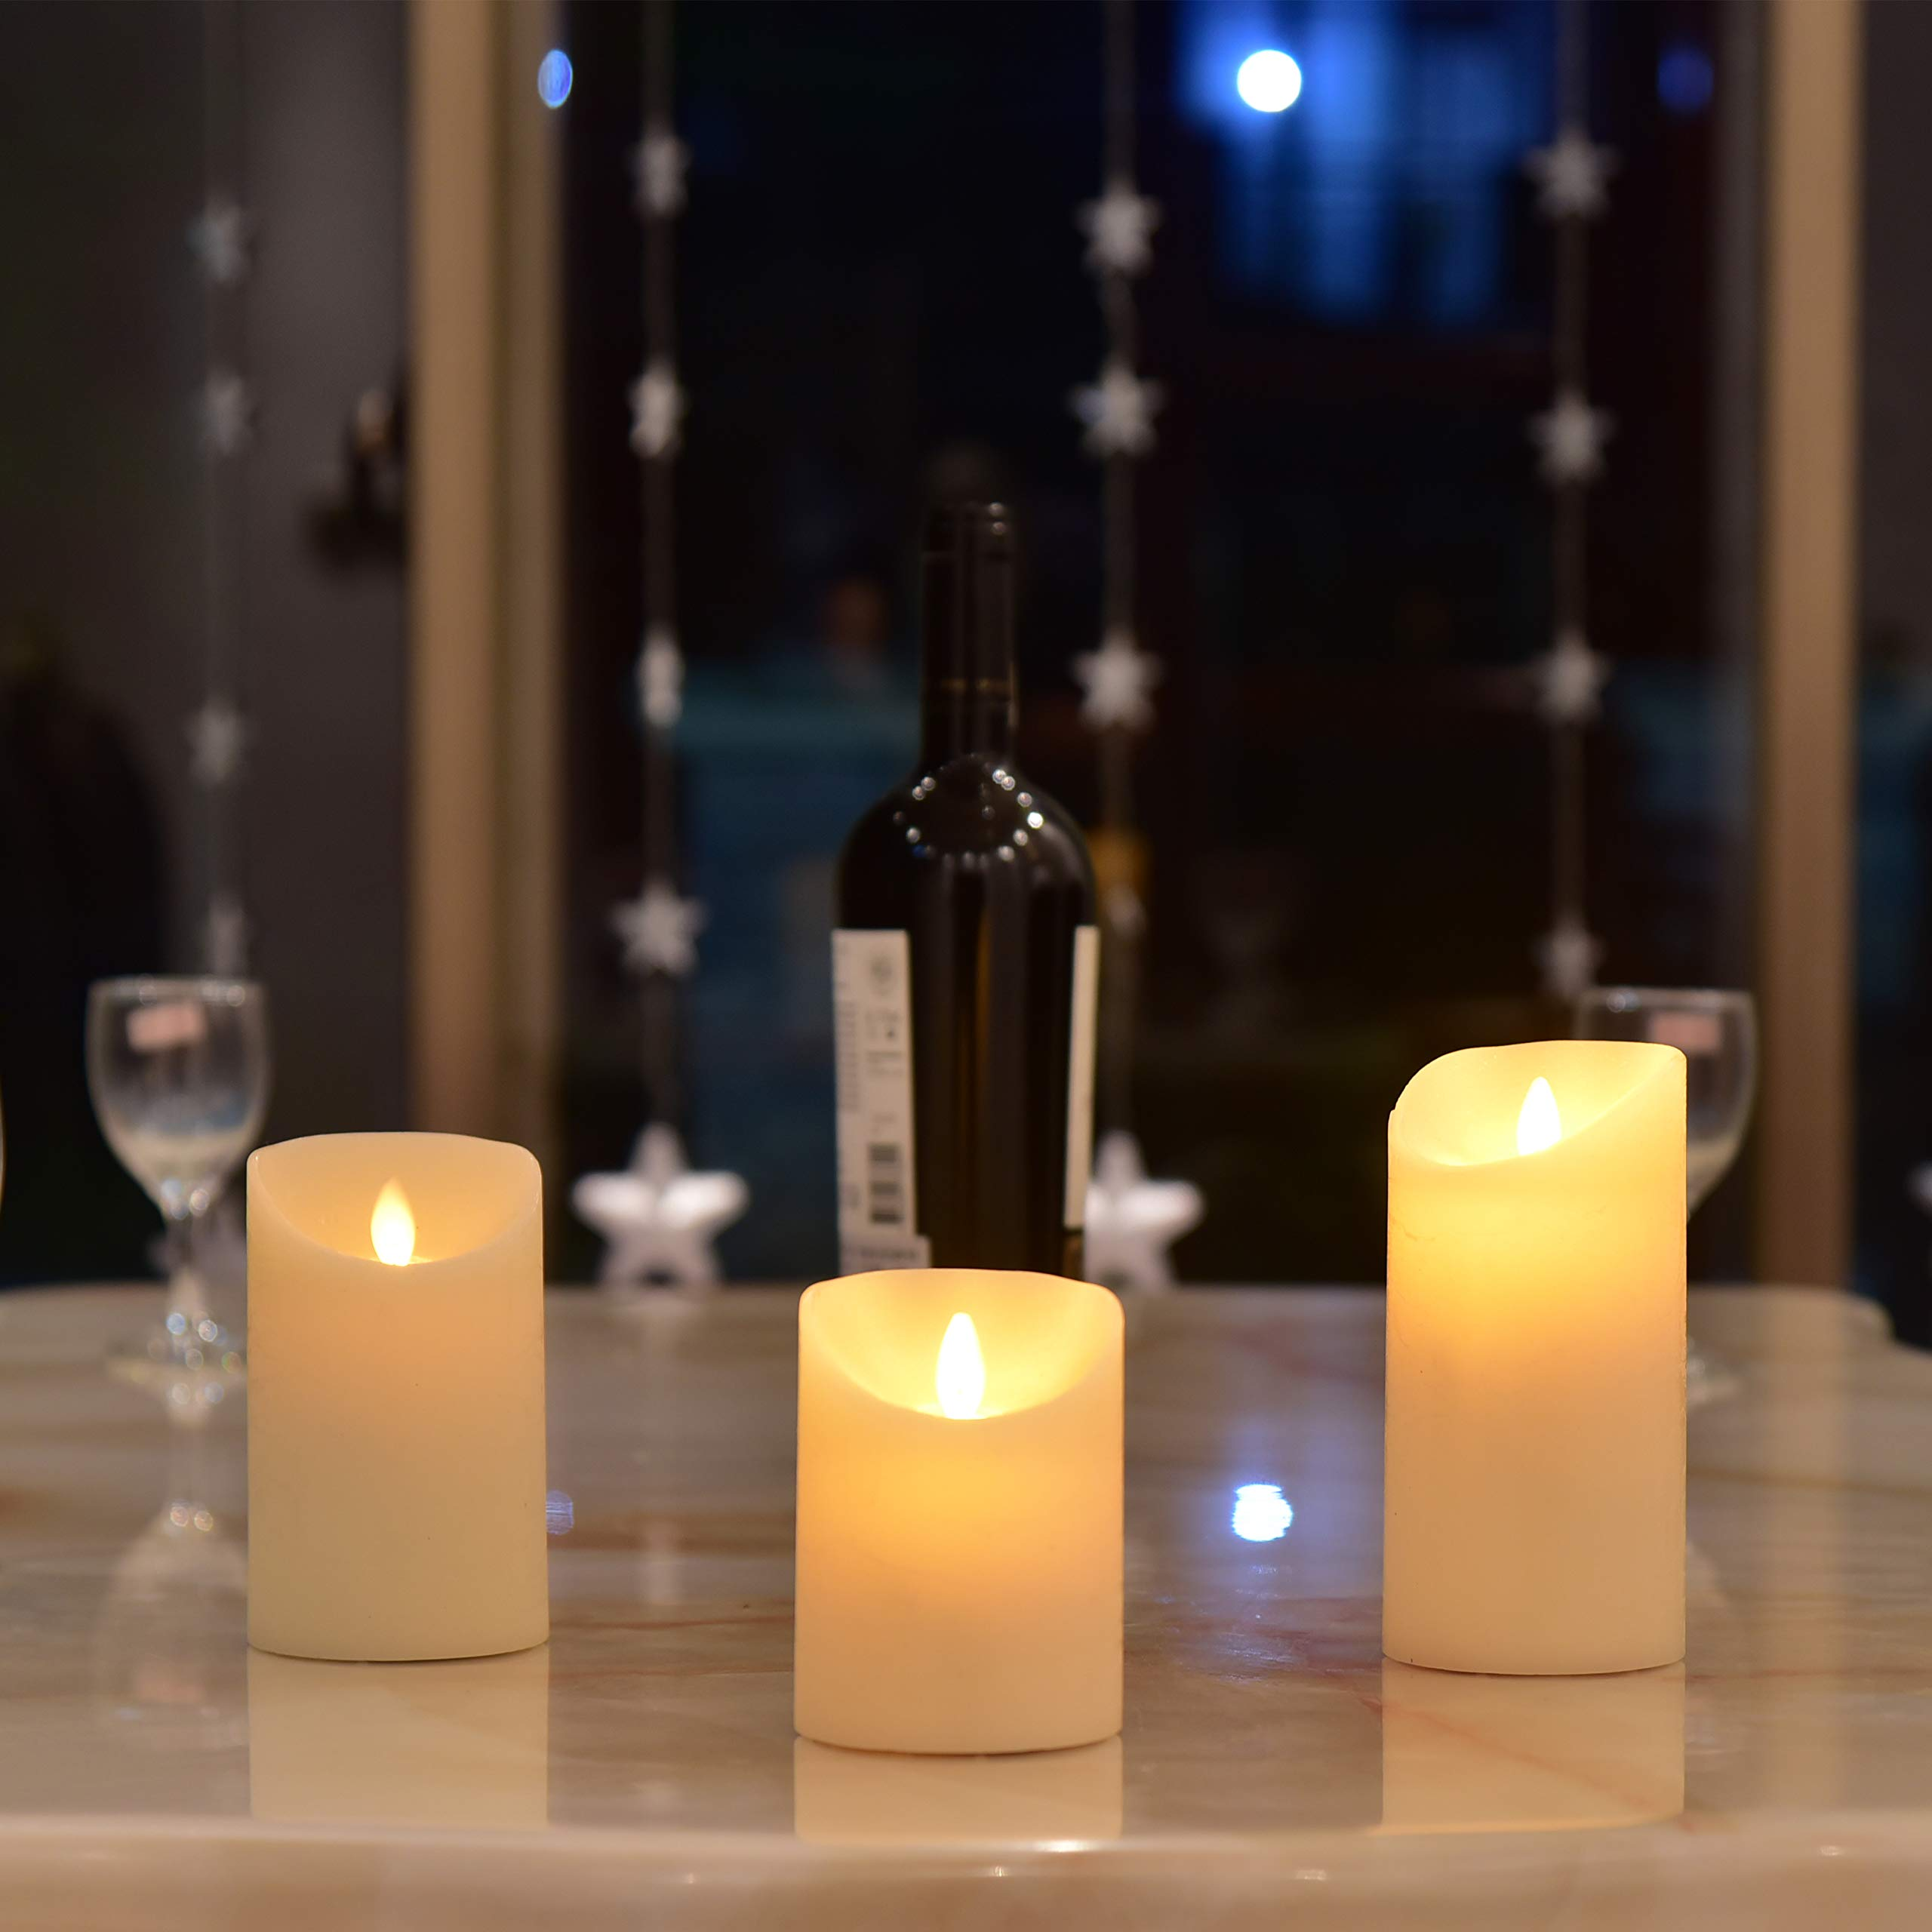 Led Flameless Candles, Set of 3 Ivory Wax Moving Flame Flickering Luxury Candle Gift with Timer Dimmable Battery Operated Light by Y YUEGANG (Image #3)